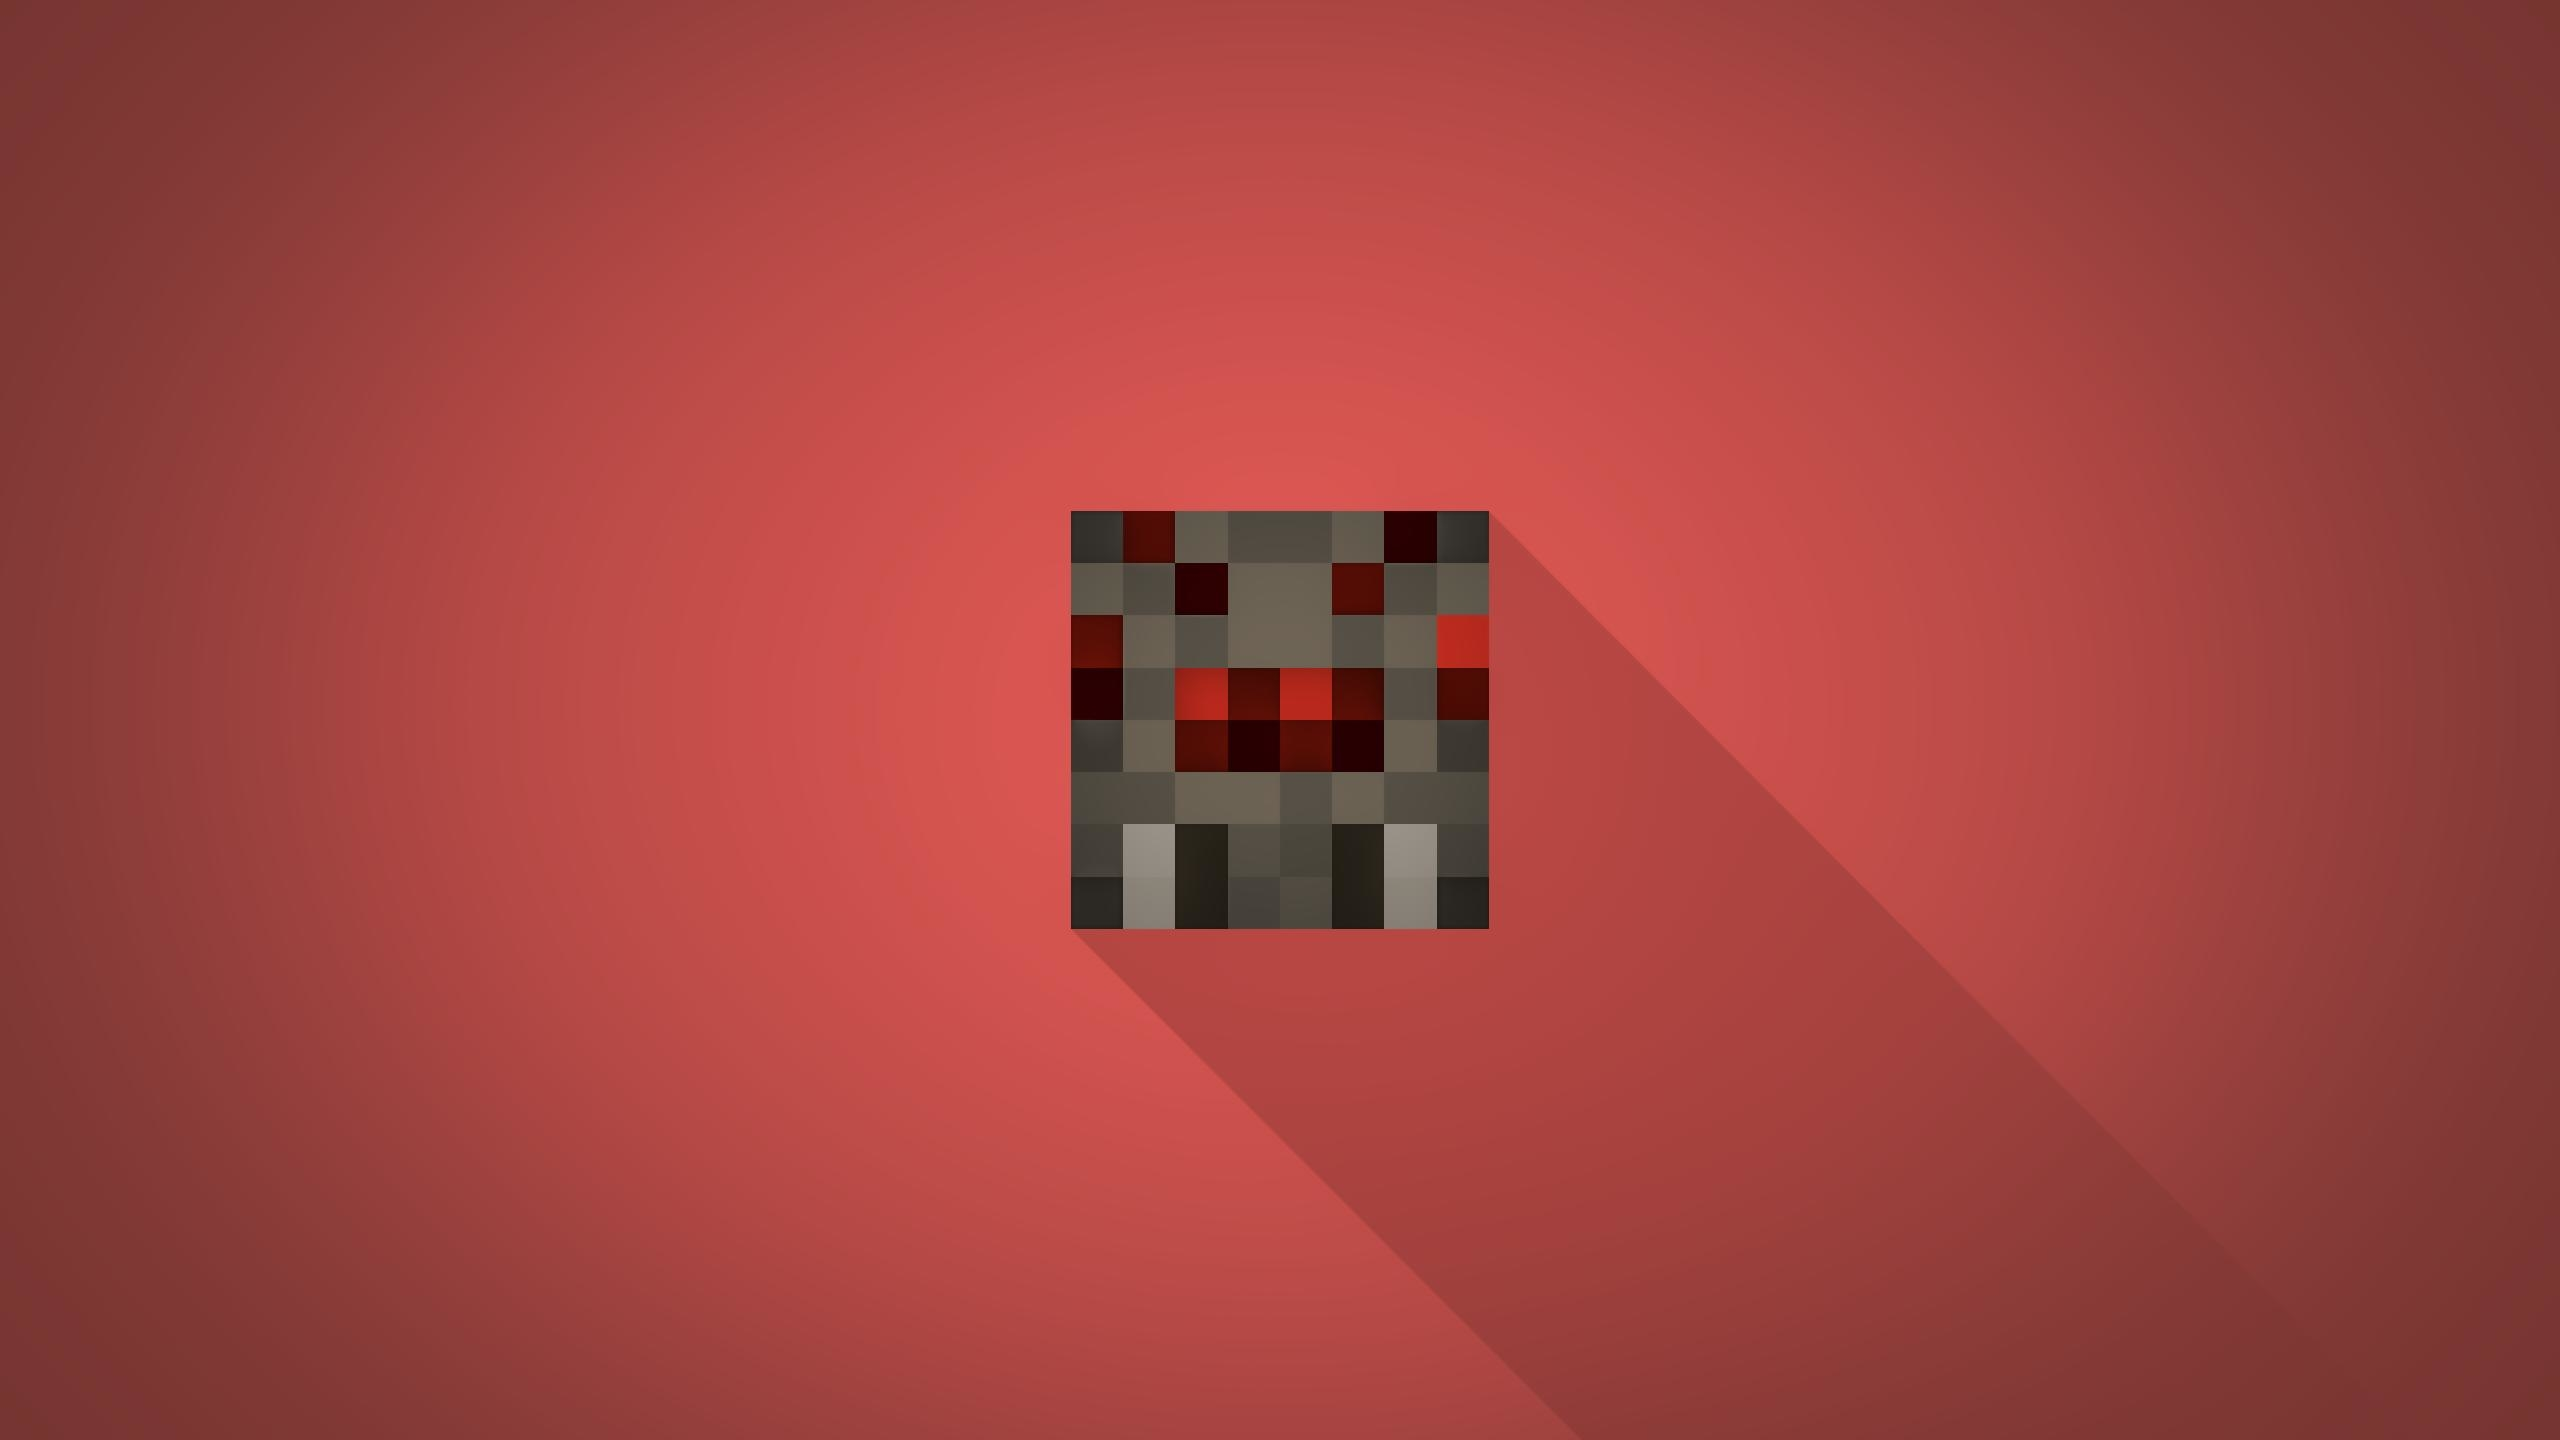 Minecraft Spider Minimalist Wallpaper Hd Games 4k Wallpapers Images Photos And Background